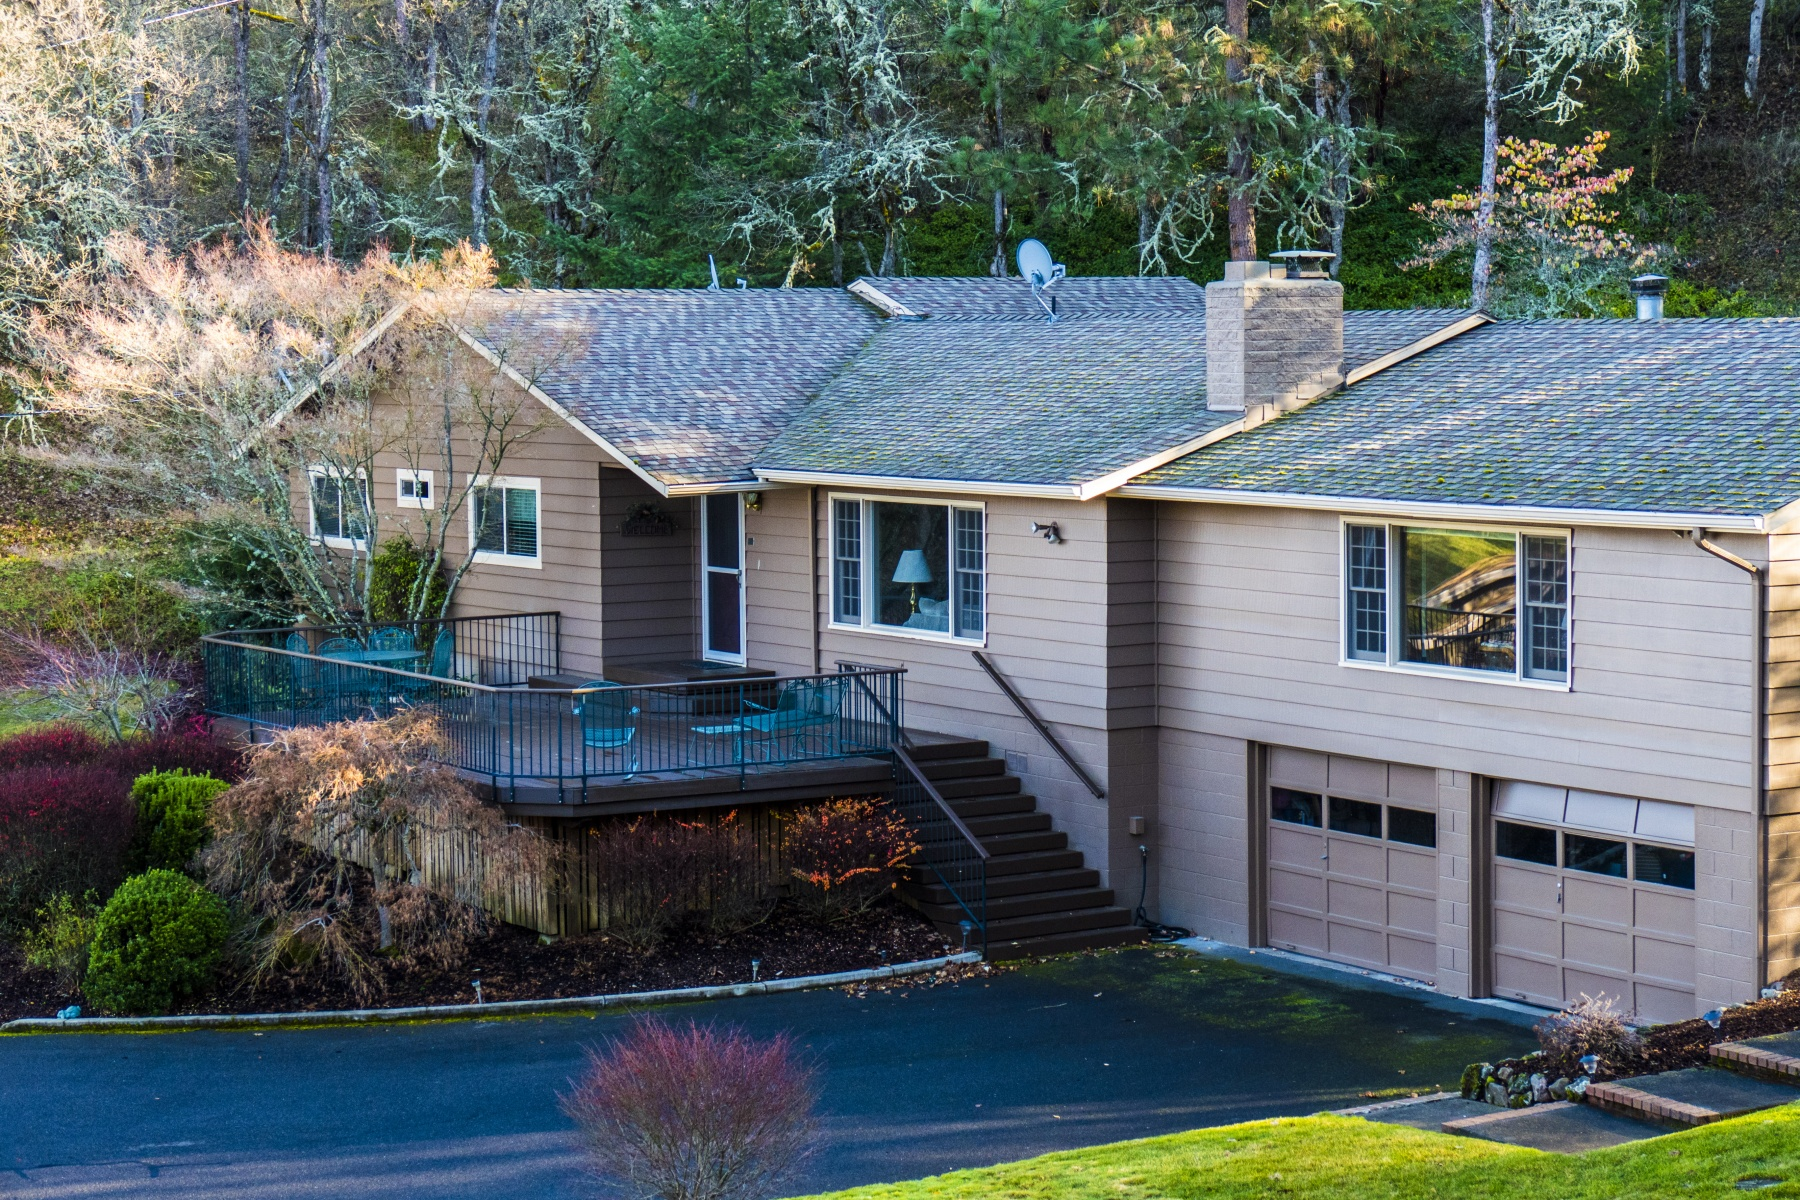 Single Family Home for Sale at 4340 Independence School Road, MEDFORD 4340 Independence School Rd Medford, Oregon, 97501 United States